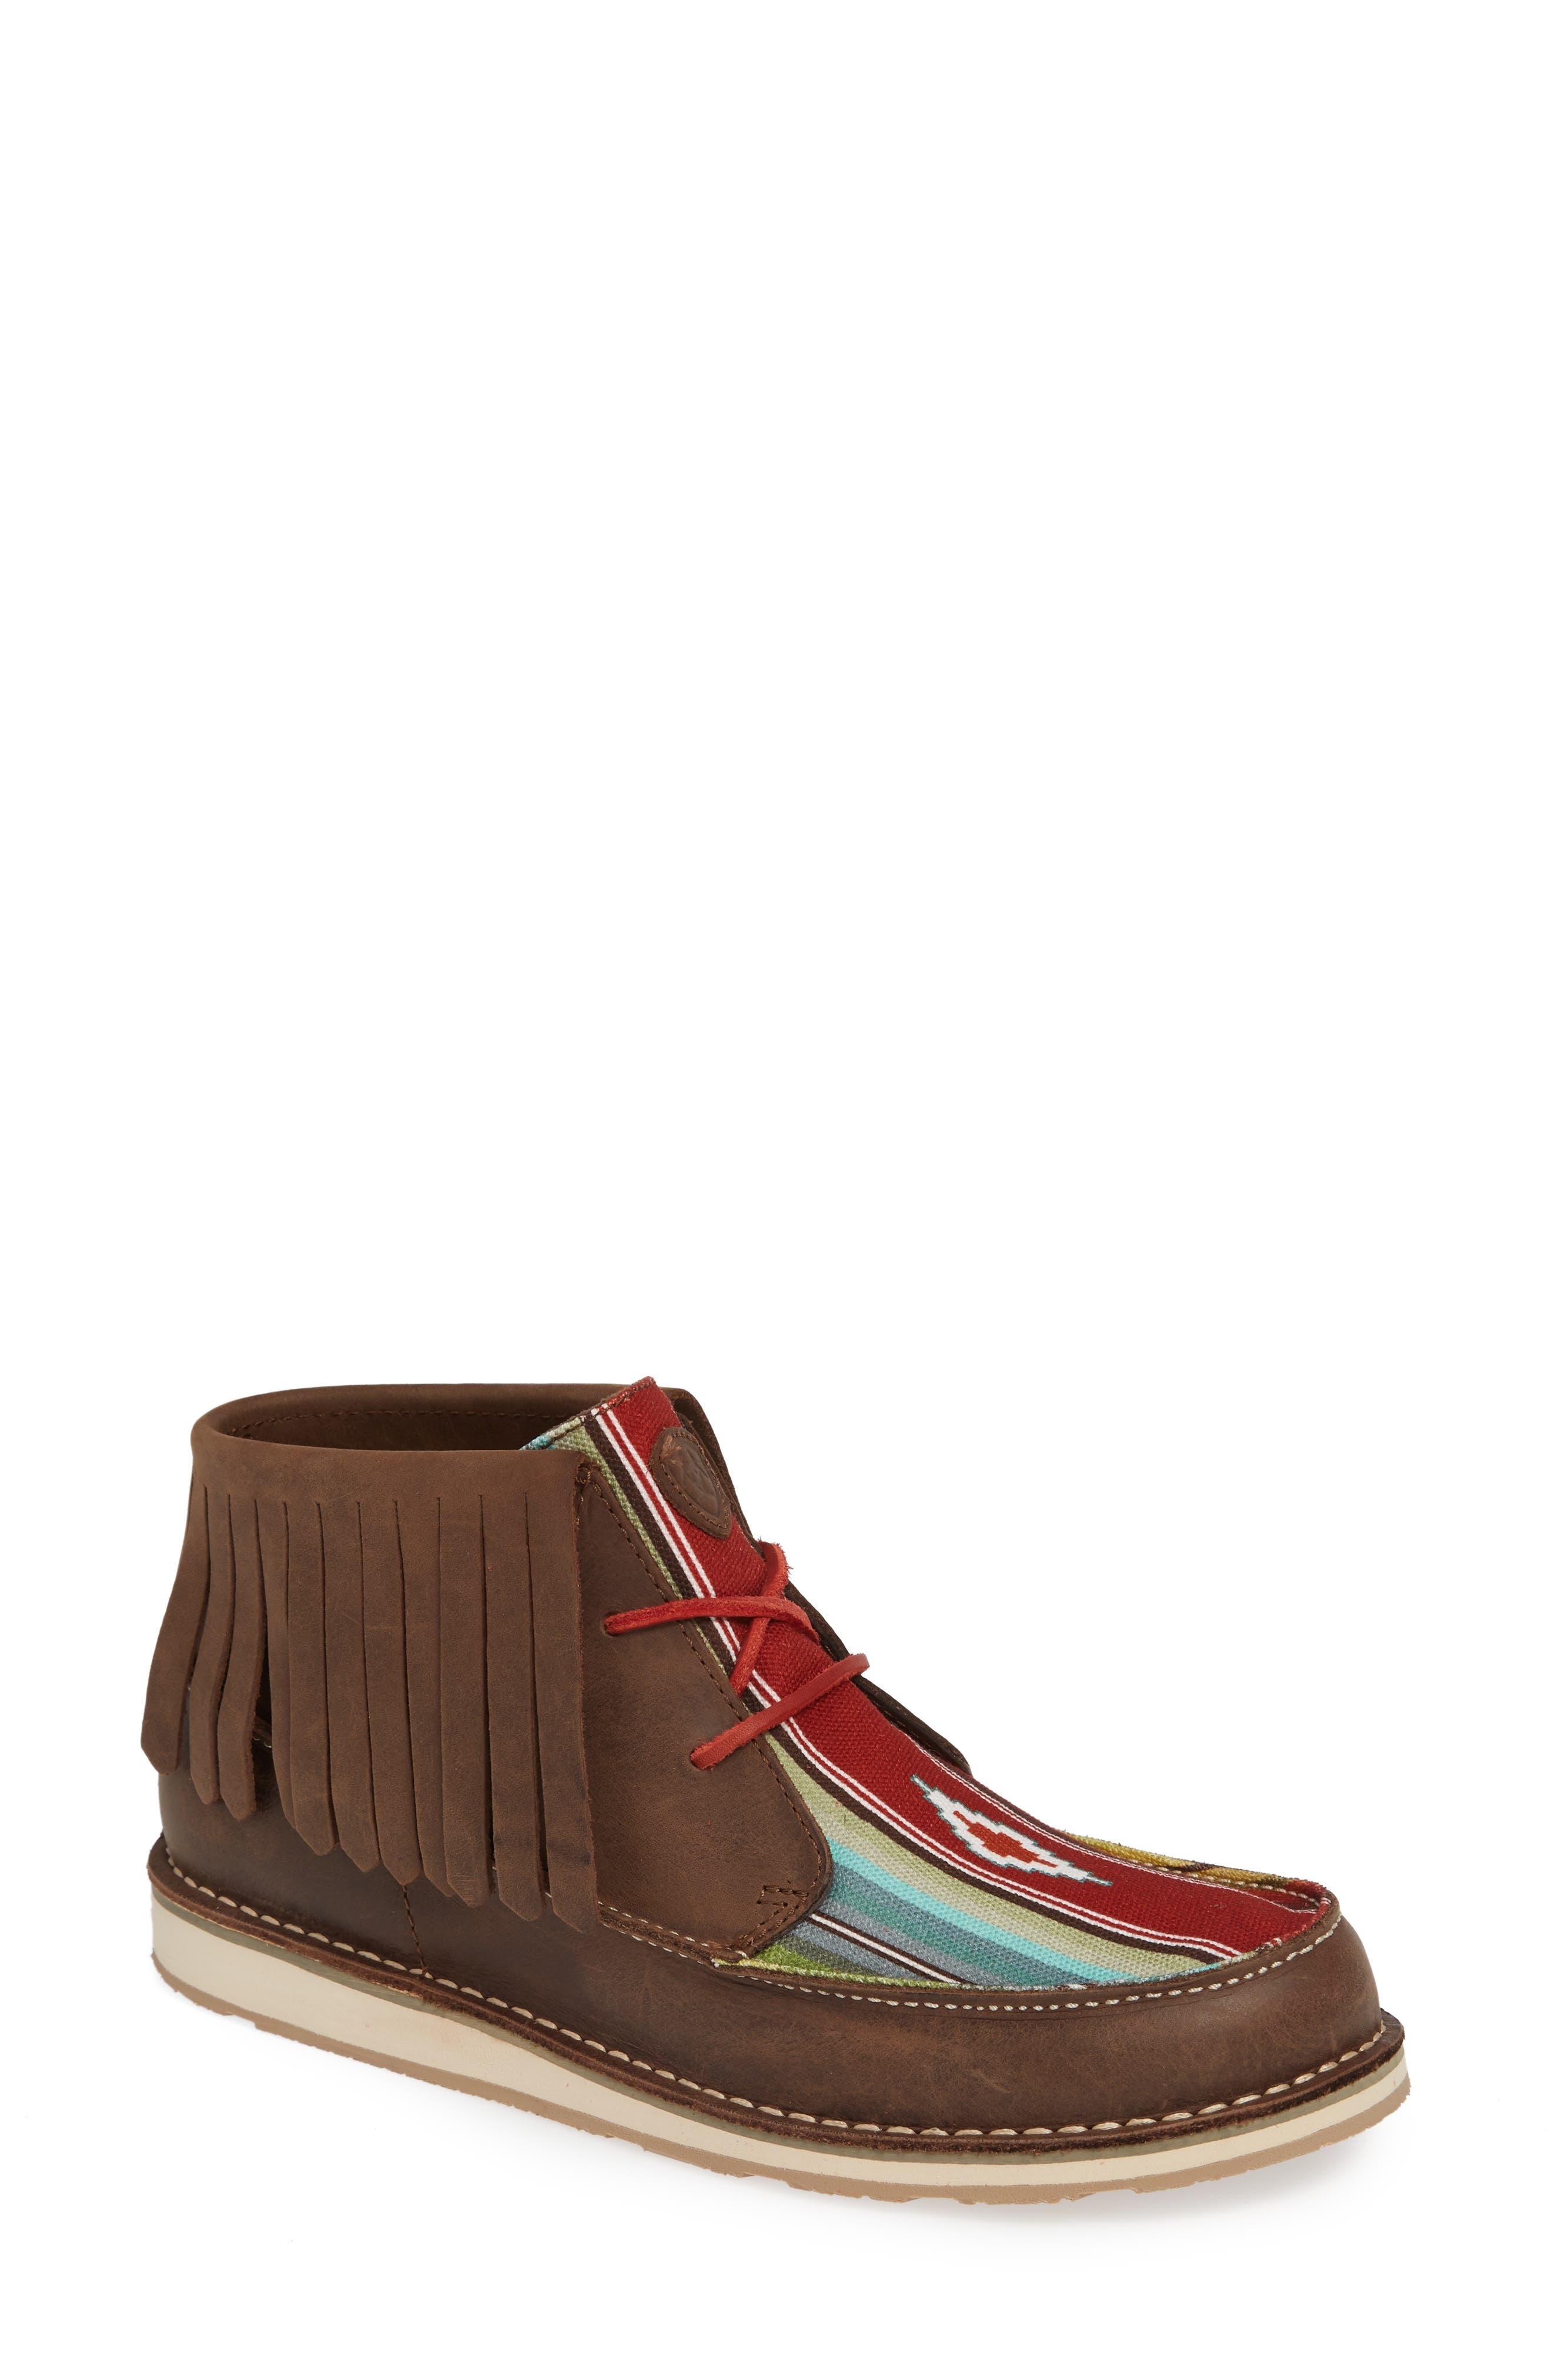 Cruiser Fringe Chukka Boot,                         Main,                         color, PALM BROWN SADDLE LEATHER